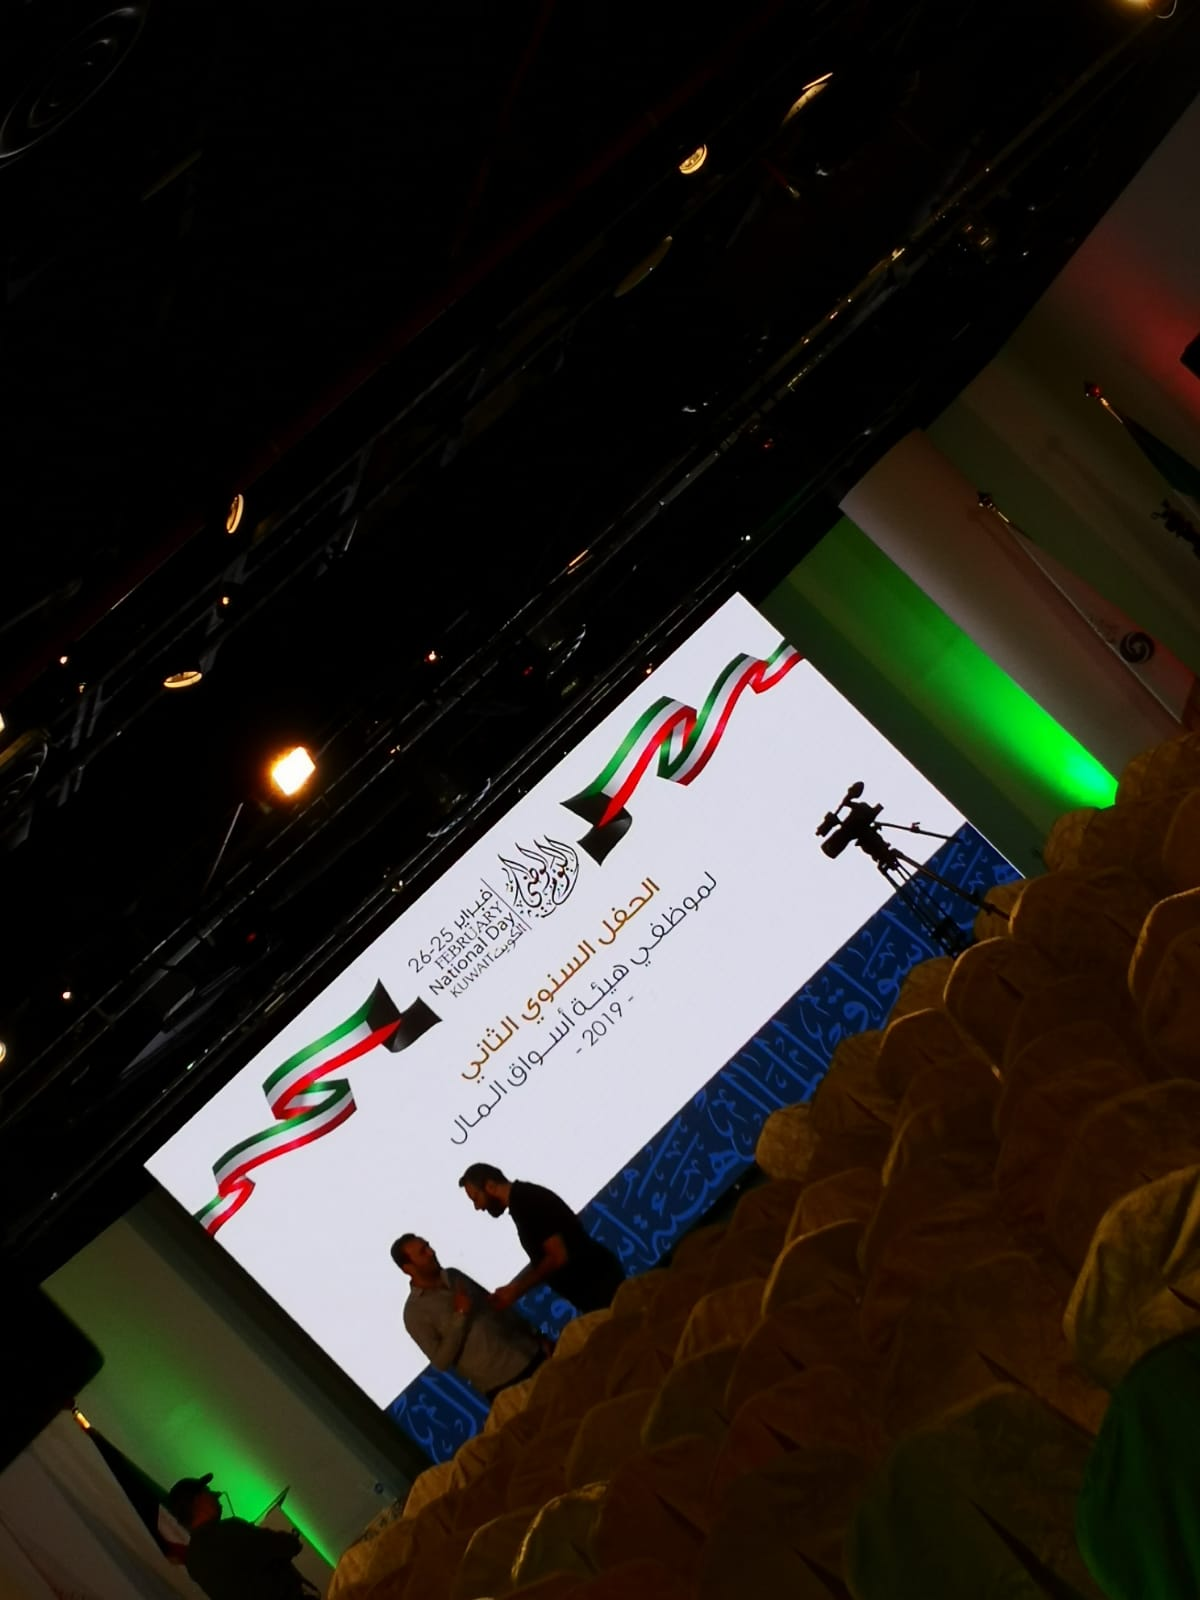 The second annual ceremony of the staff of the Capital Market Authority